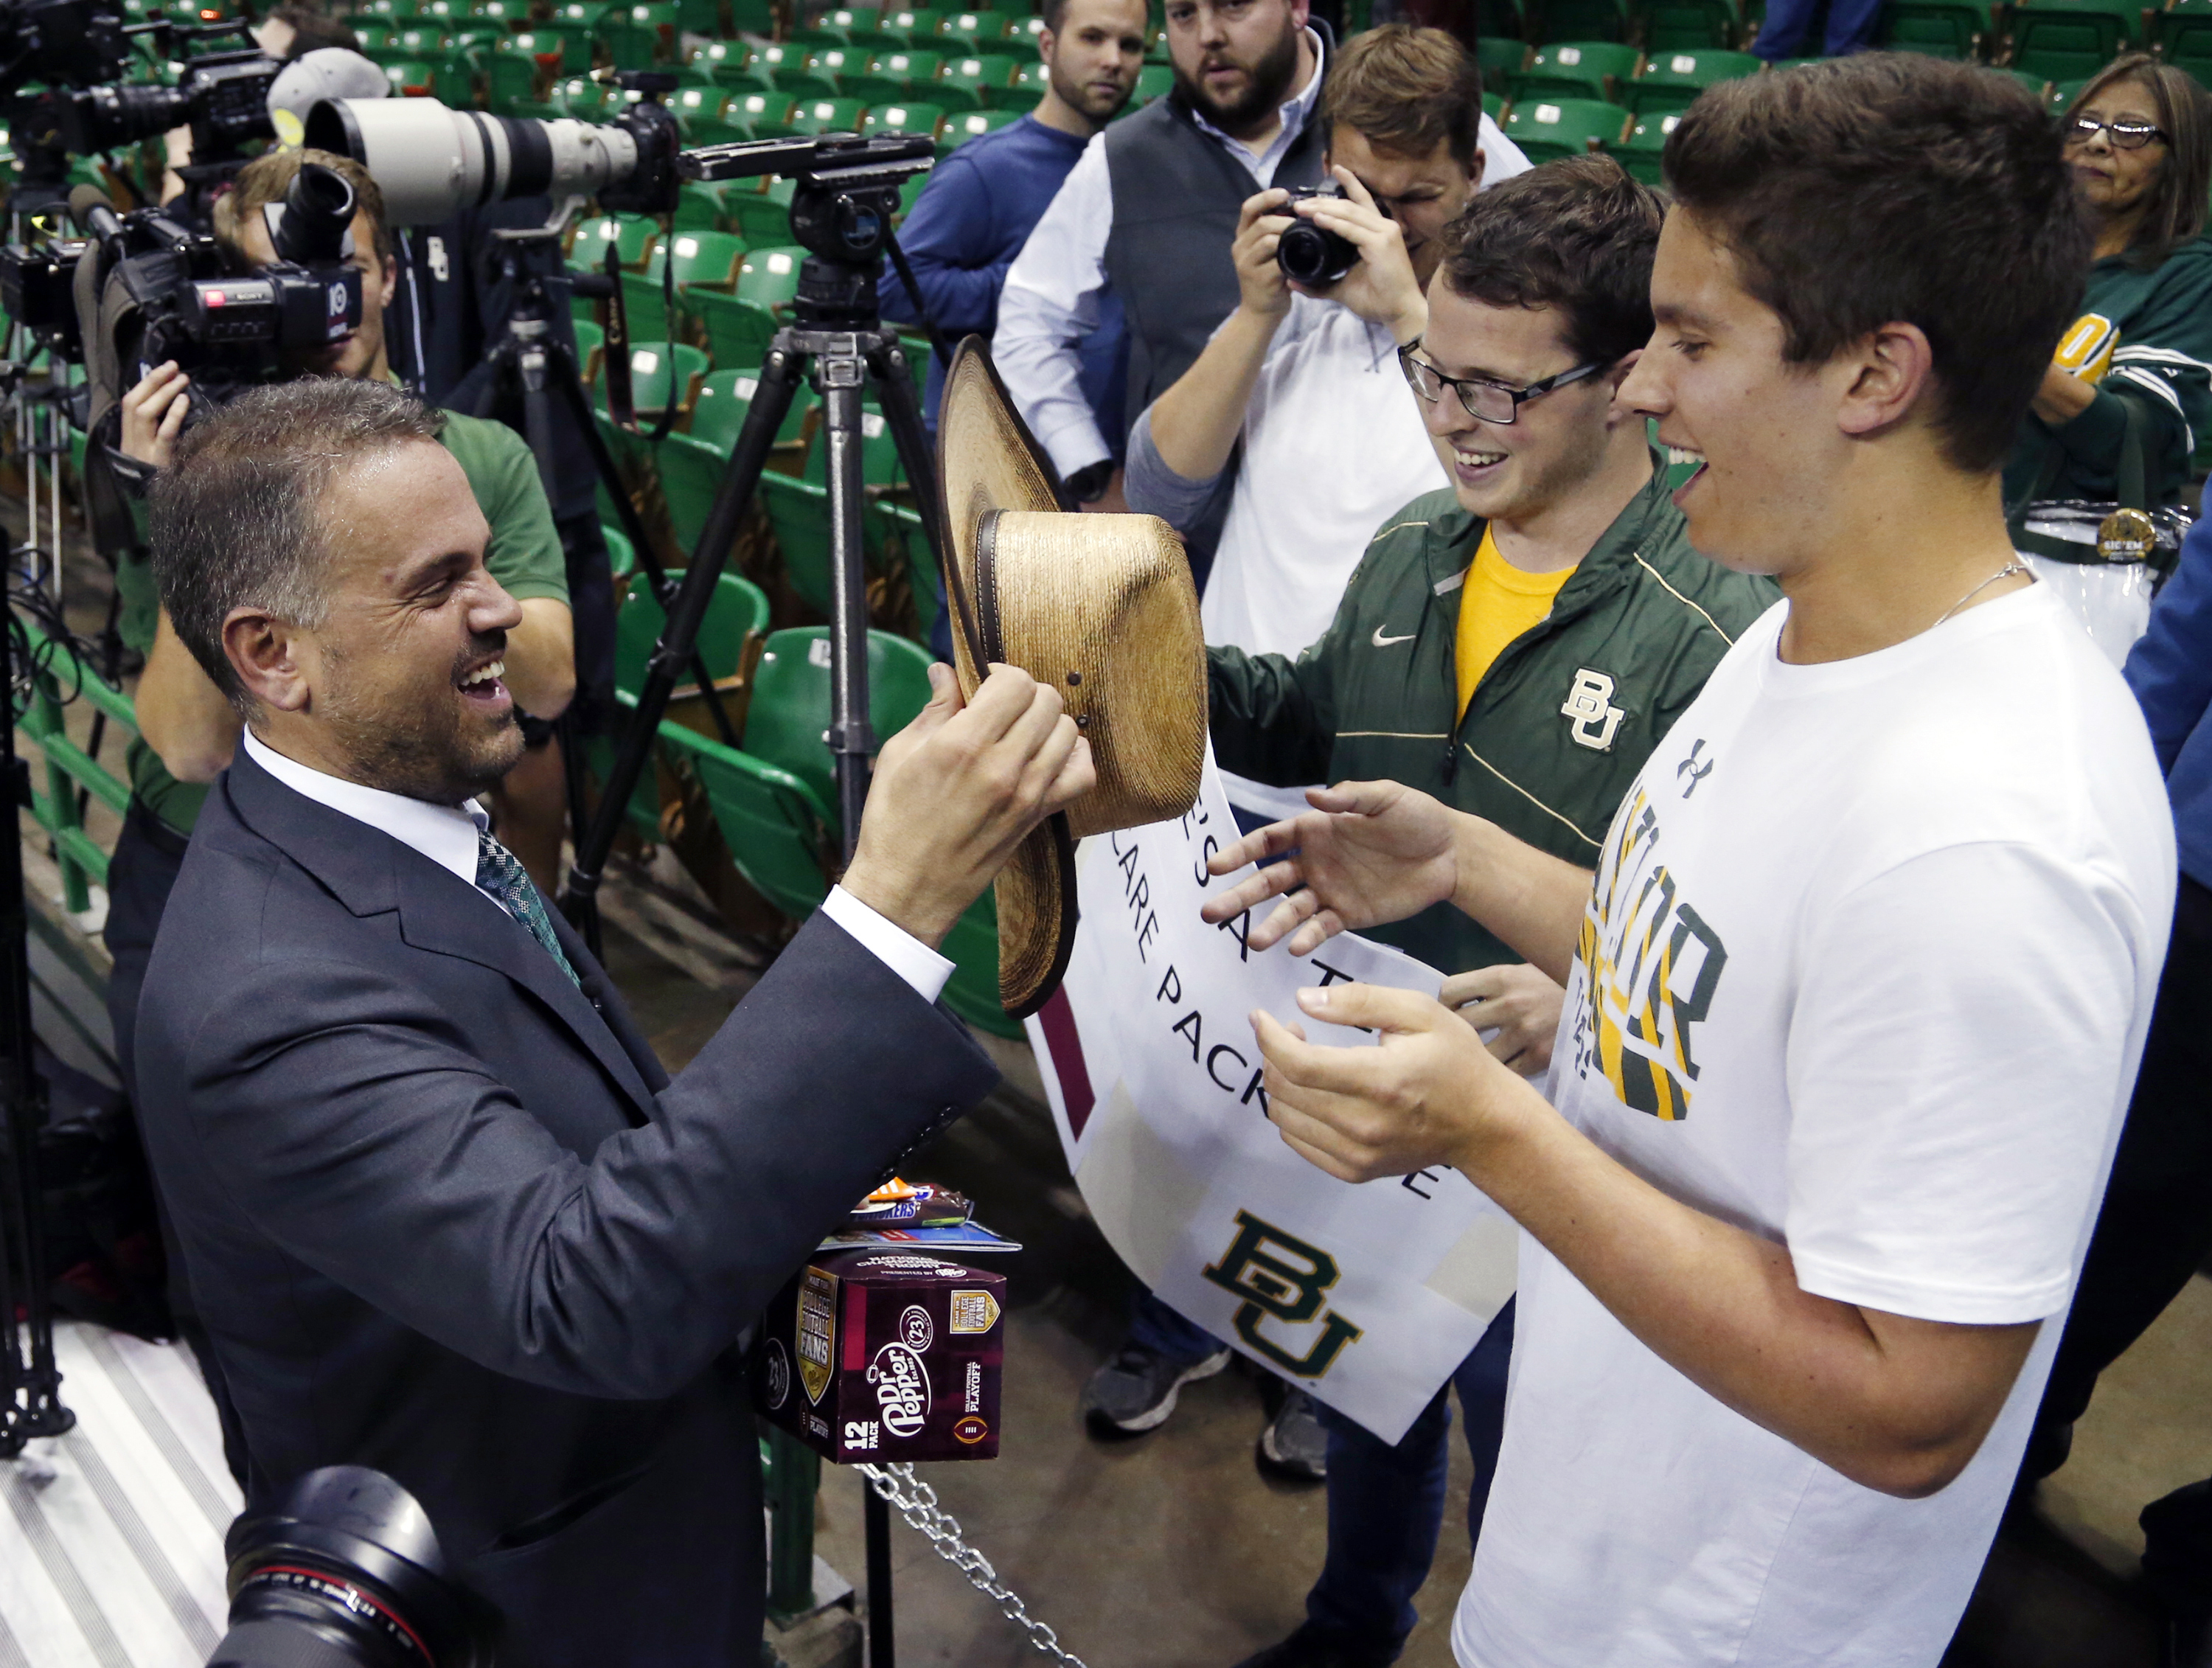 Baylor University's new football coach Matt Rhule, left, receives a cowboy hat from senior Caleb Simmons, right following a public event at the Ferrell Center, Wednesday, Dec. 7, 2016, in Waco, Texas. Rhule replaces Jim Grobe, who led the Bears to a 6-6 r